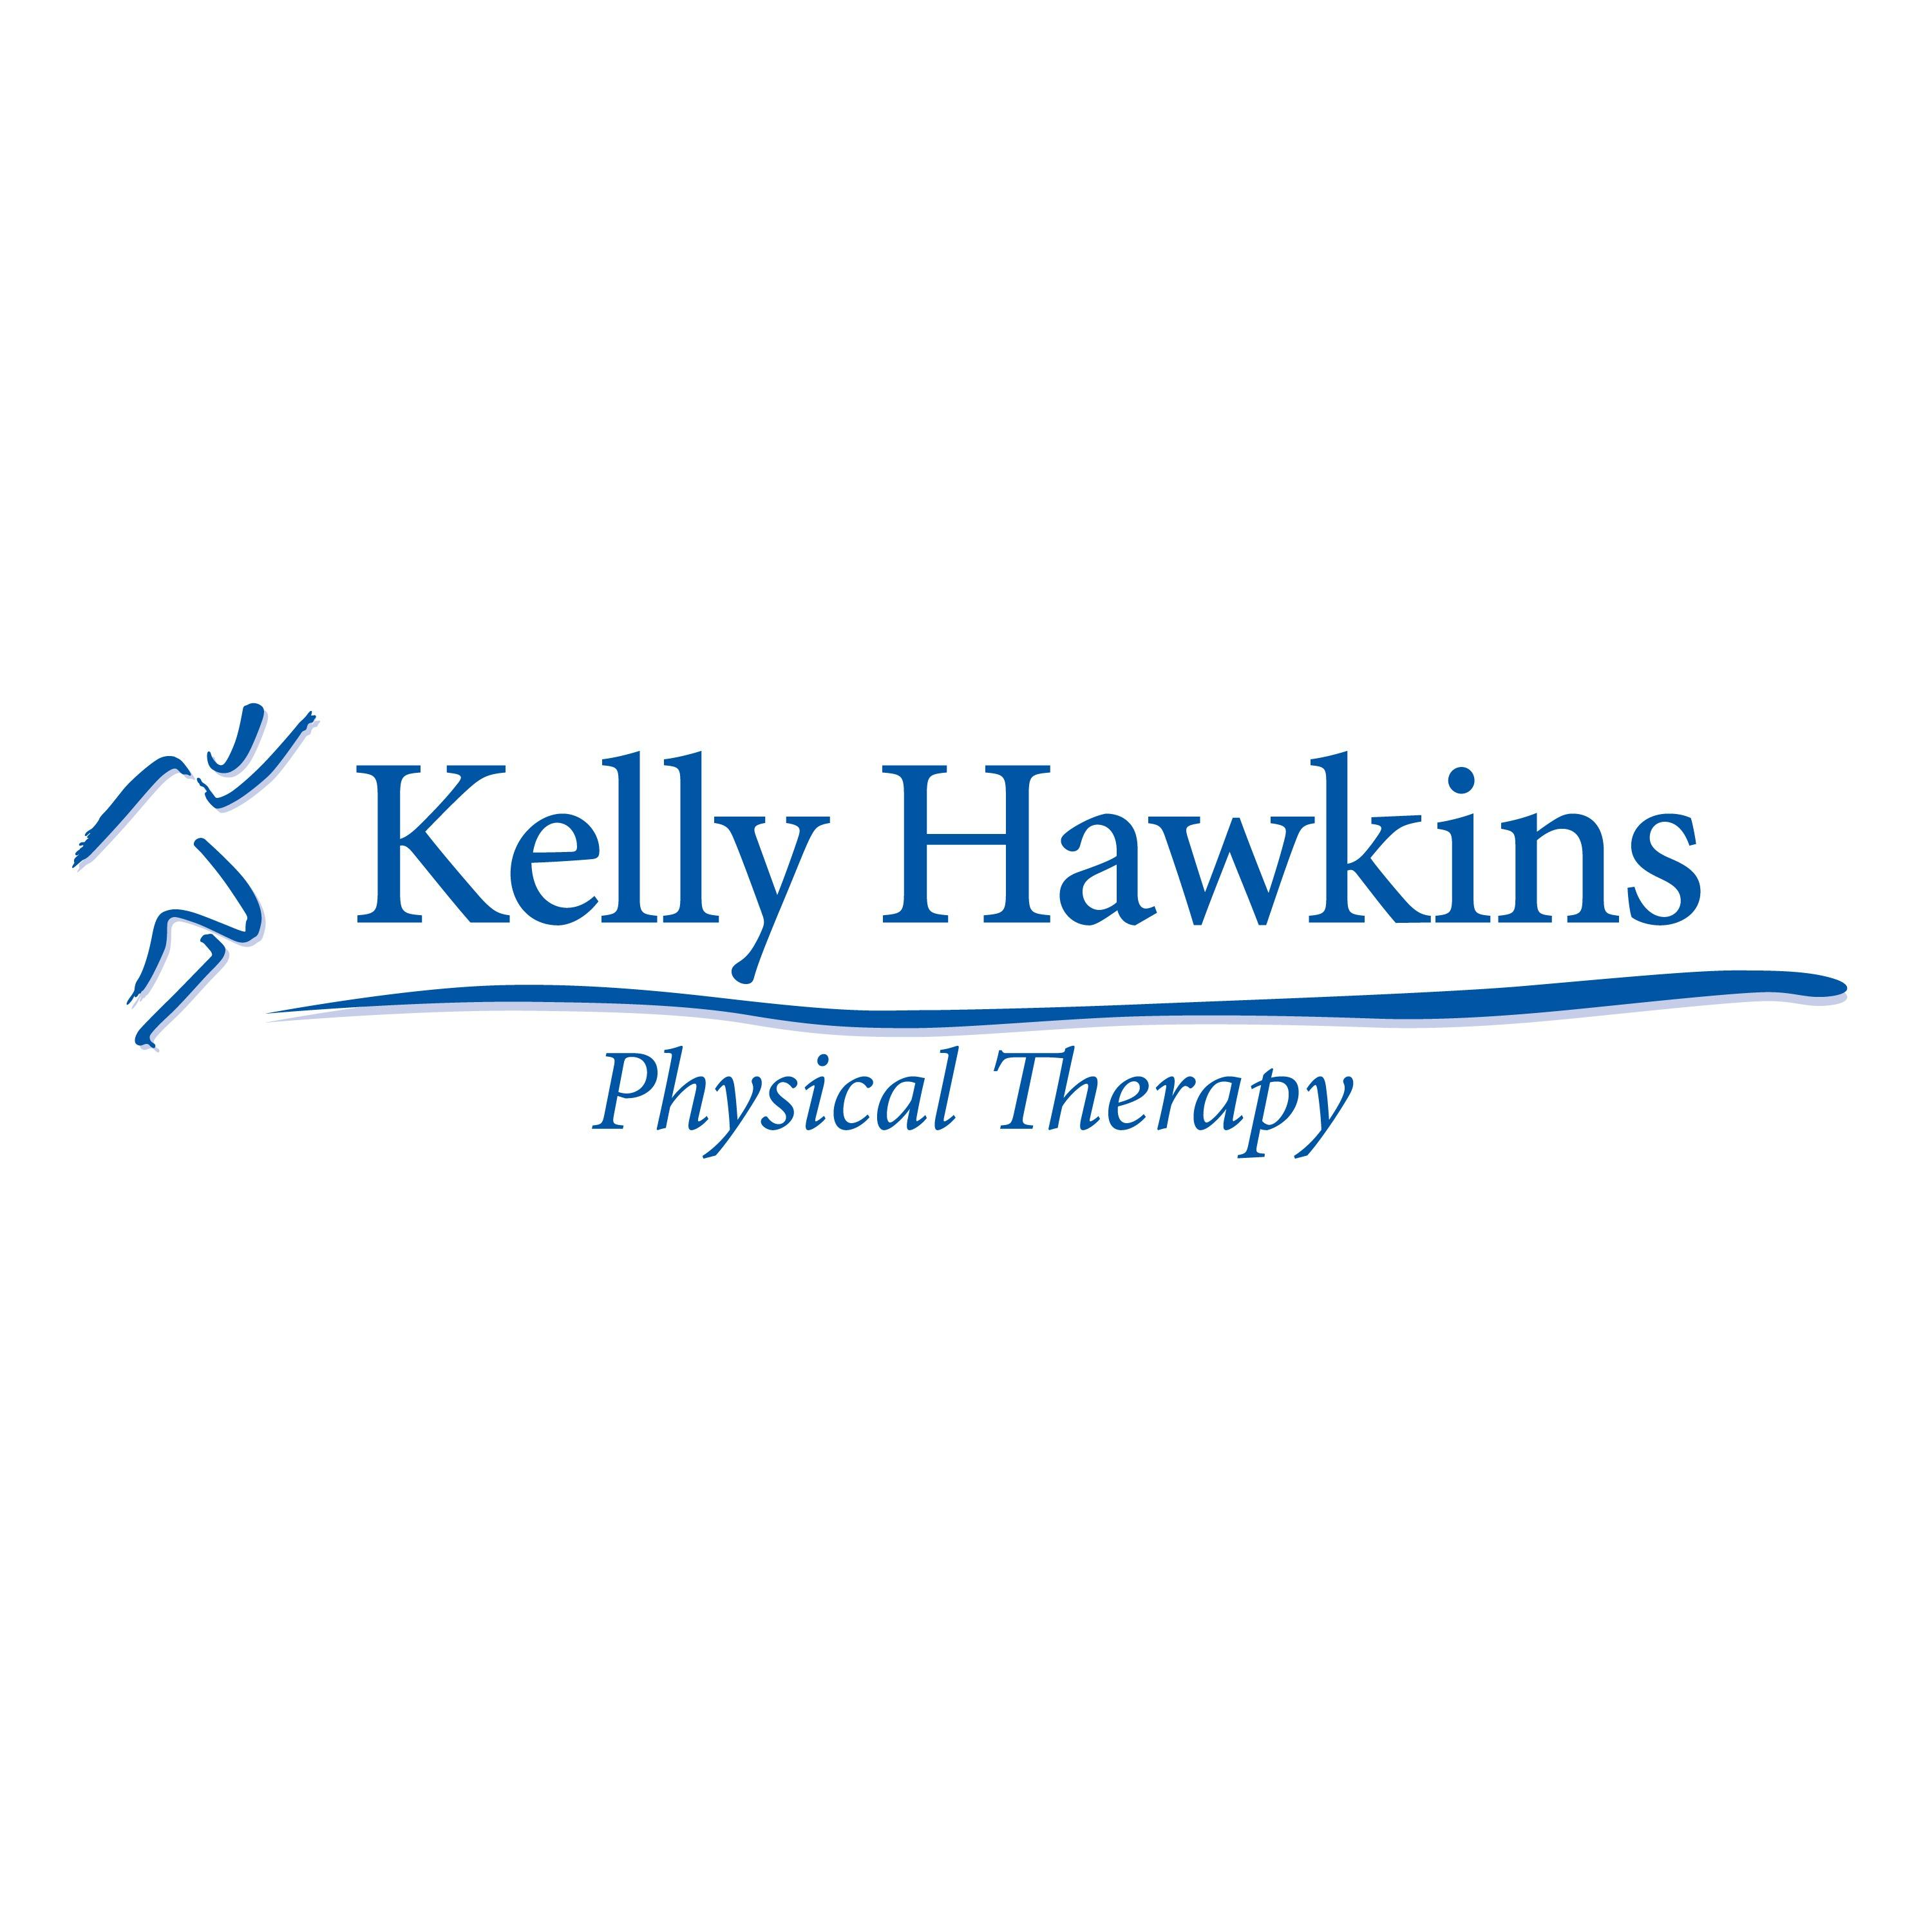 Kelly Hawkins Physical Therapy